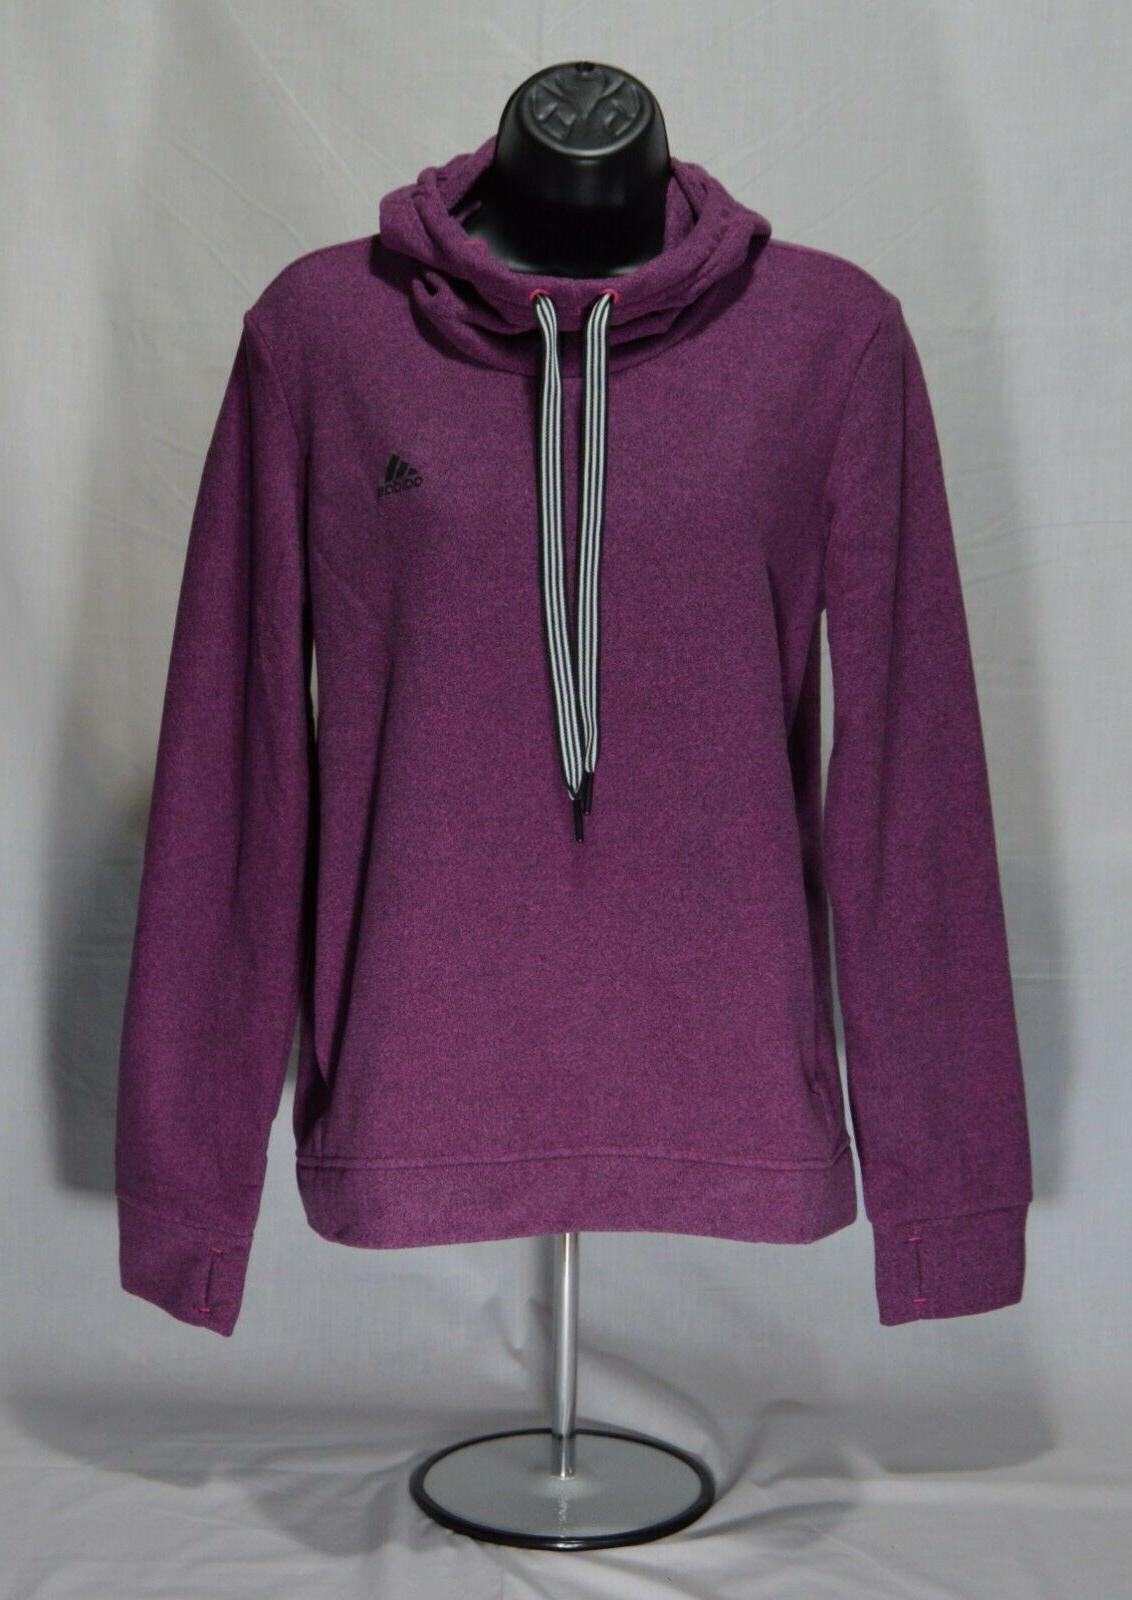 Adidas Women's Active Trans Hoodie Sweater Purple Size Small